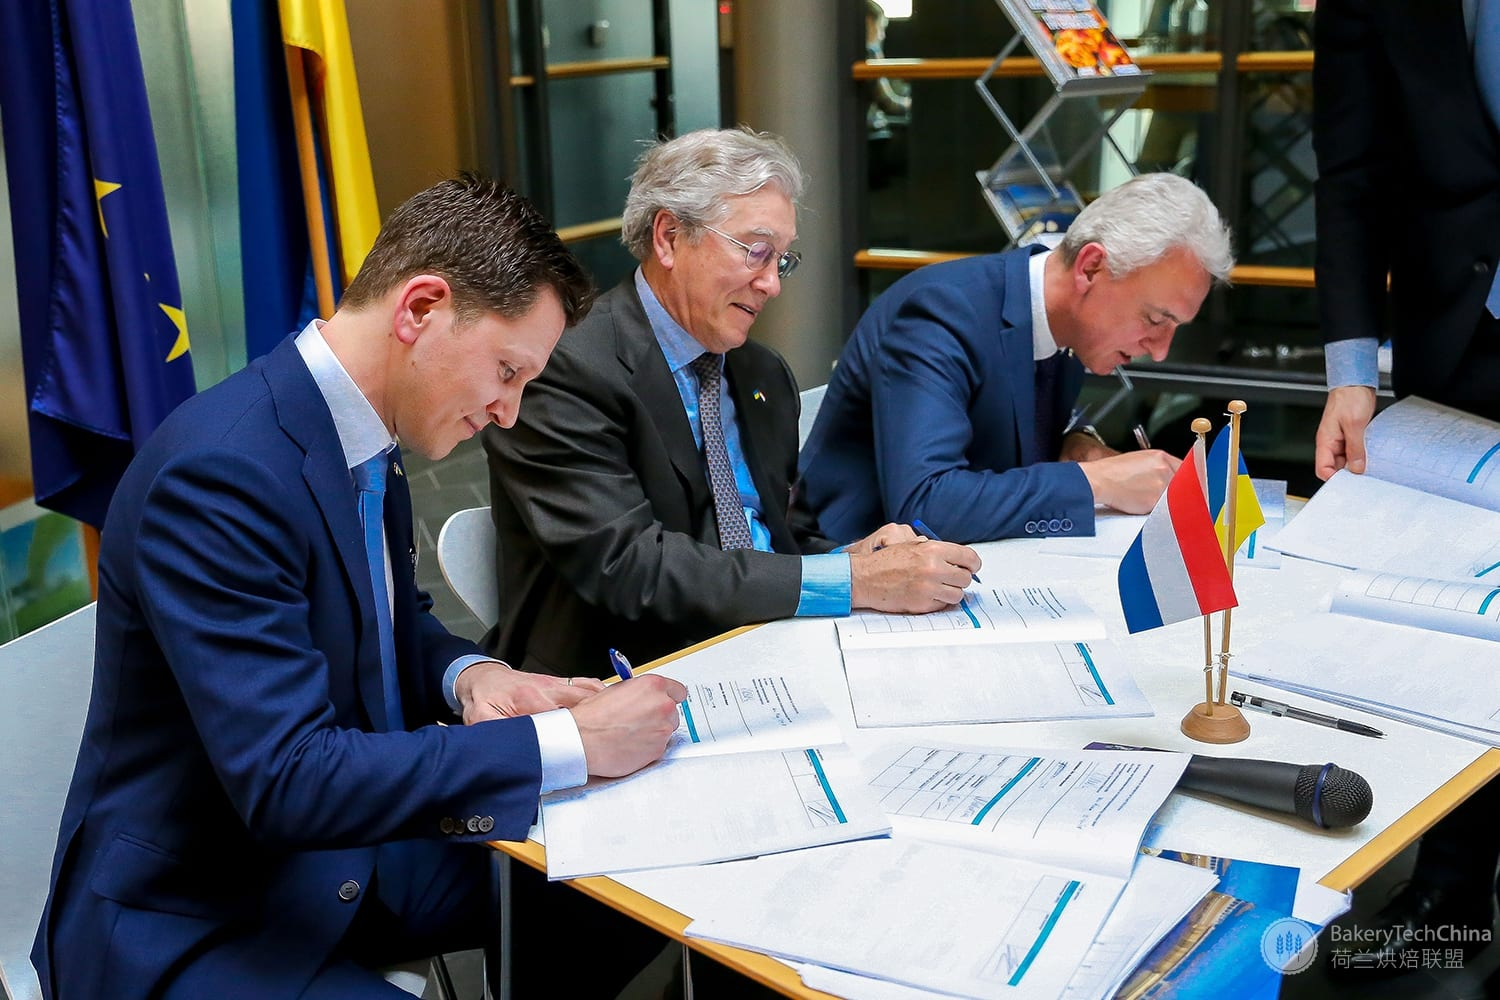 Signing Of The WaterwayTechHolland Contract At The Dutch Embassy In Kiev In Presence Of State Secretary, Mr. Andriy Galuschak Of The Ministry Of Infrastructure Of Ukraine And Ambassador Mr. Ed Hoeks